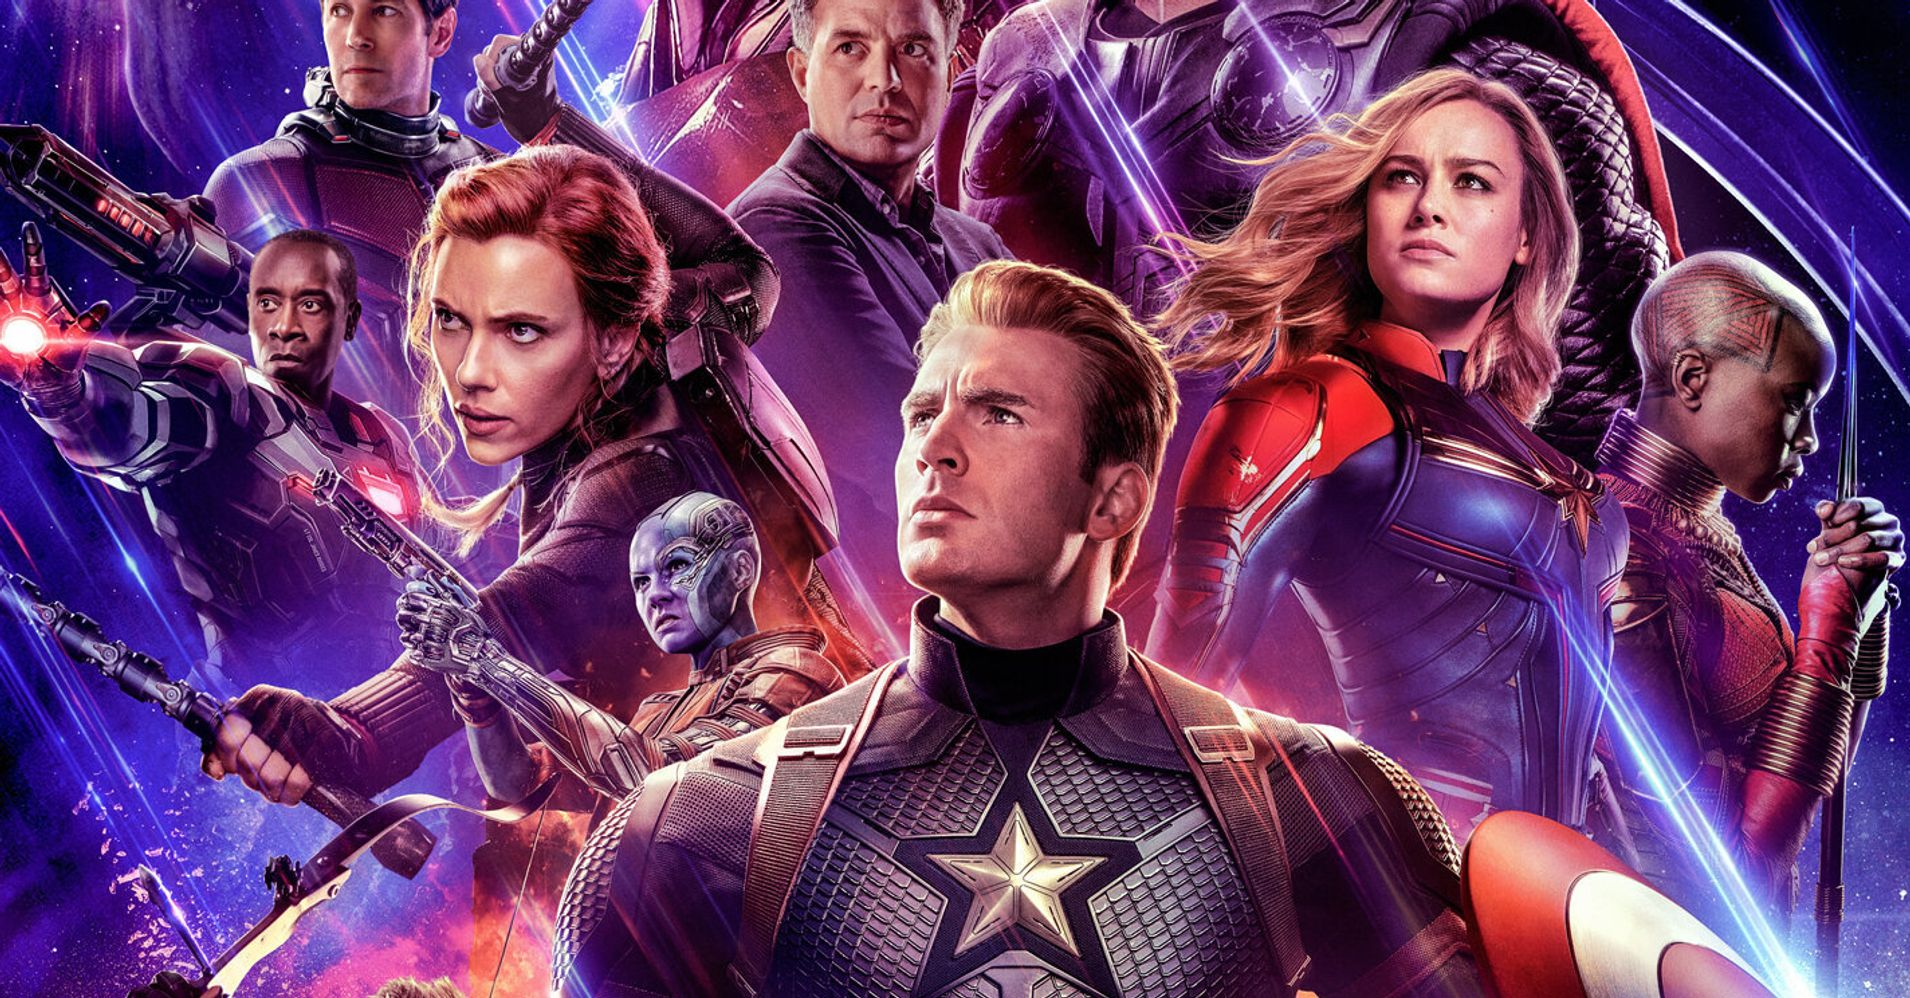 Here's The List Of New Movies And Shows Coming From Marvel